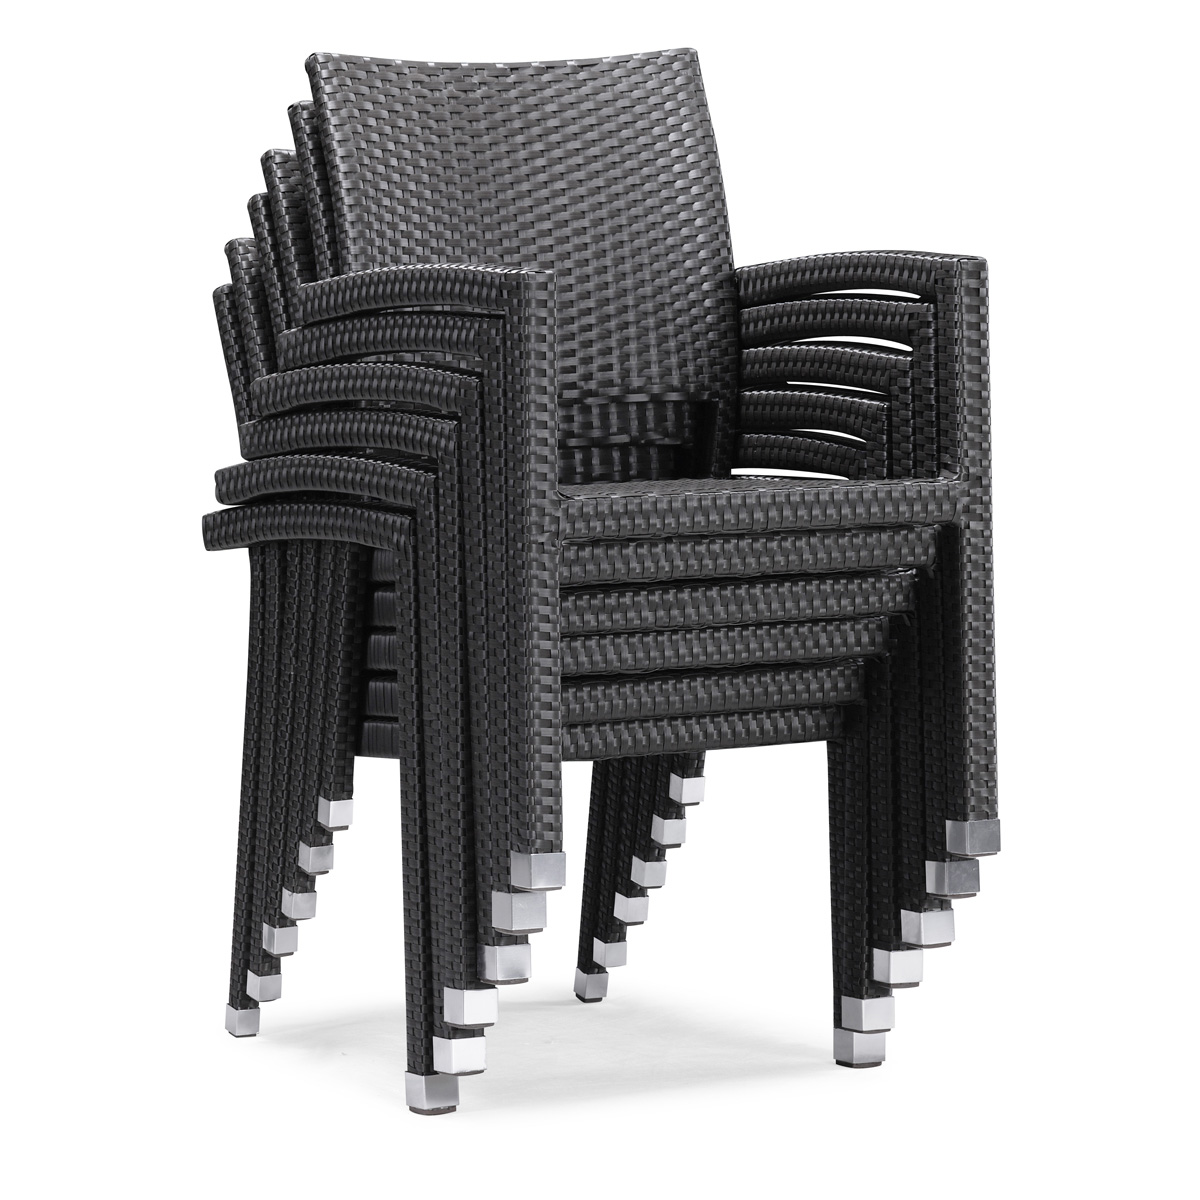 Furniture line the acapulco chair and chat set patio productions -  Boracay Dining Chairs Stack Up For Easy Storage